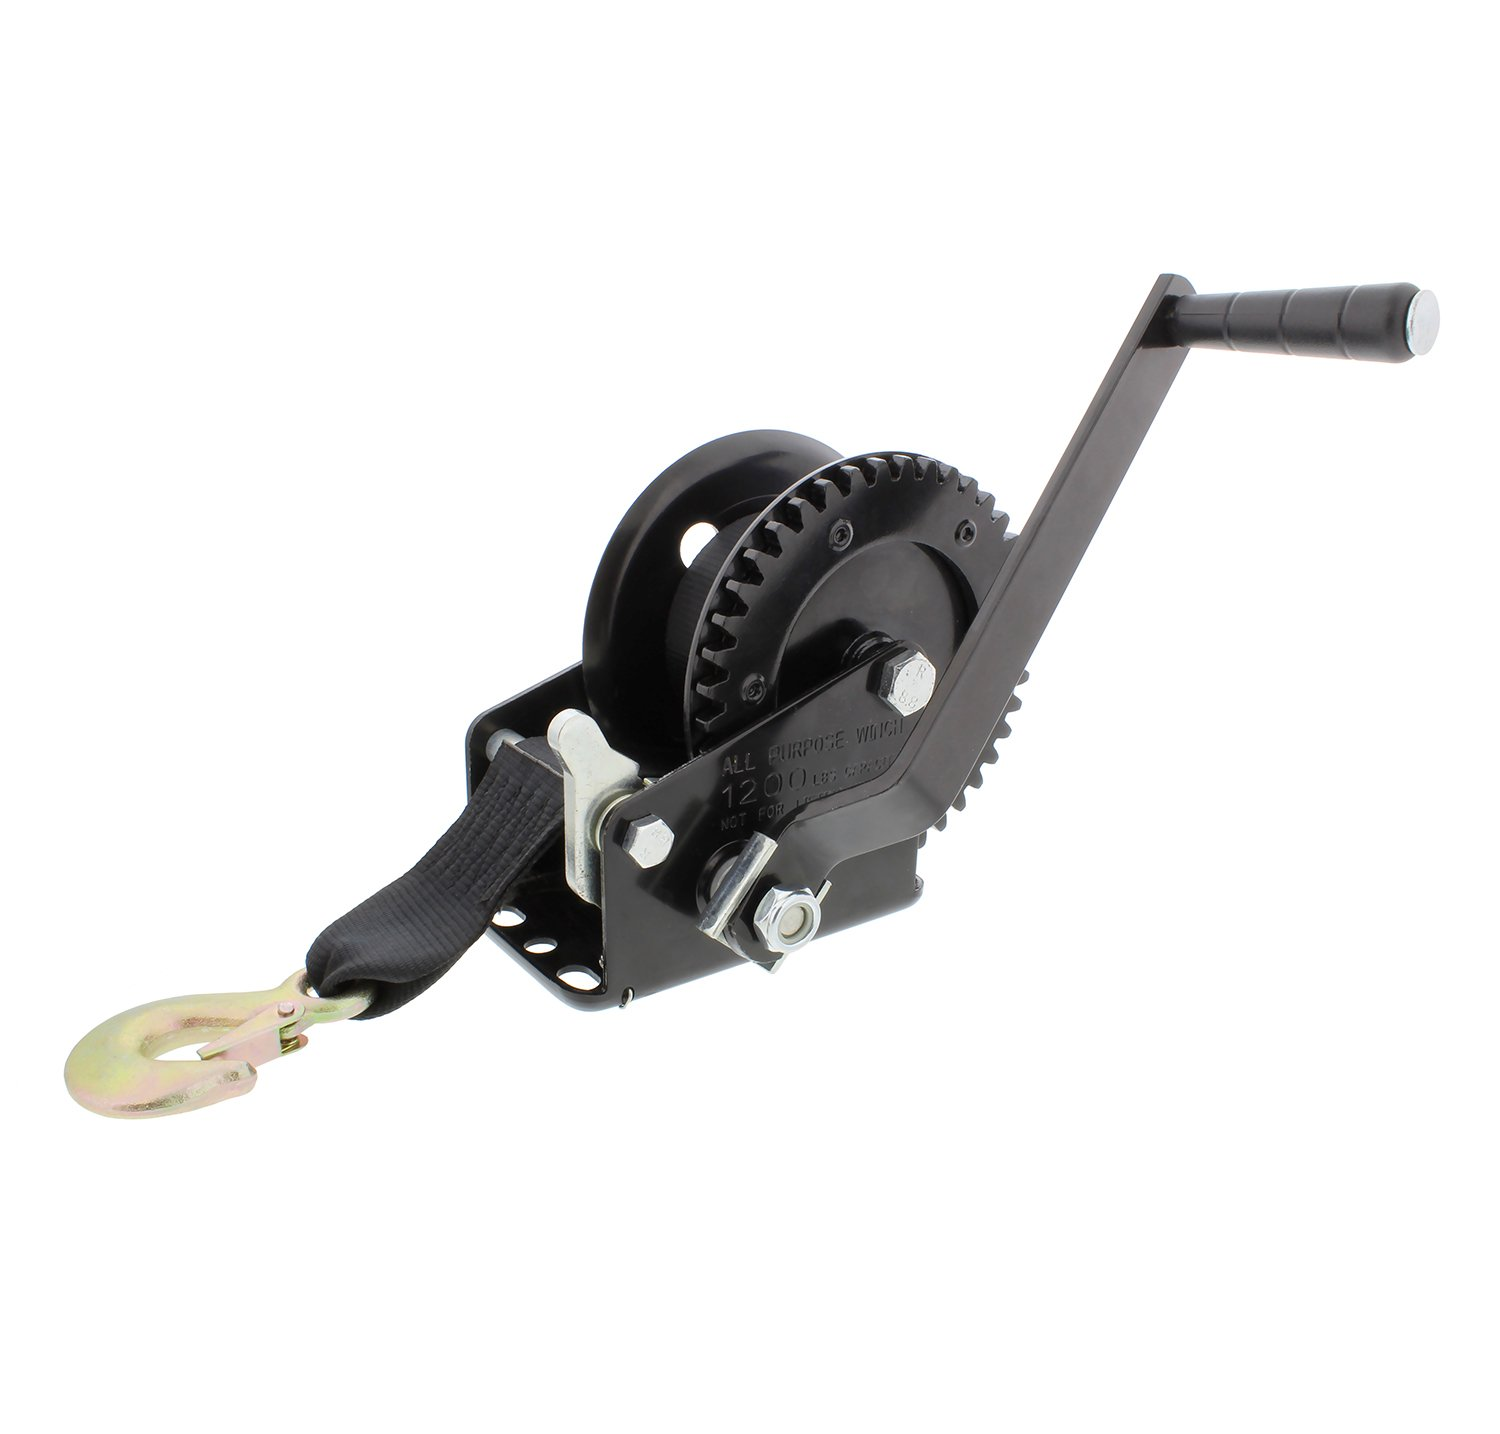 ABN Come Along Hand Crank Winch with Boat Winch Strap and Hook - Single Gear 1,200 lbs - ATV, Boat Trailer Winch by ABN